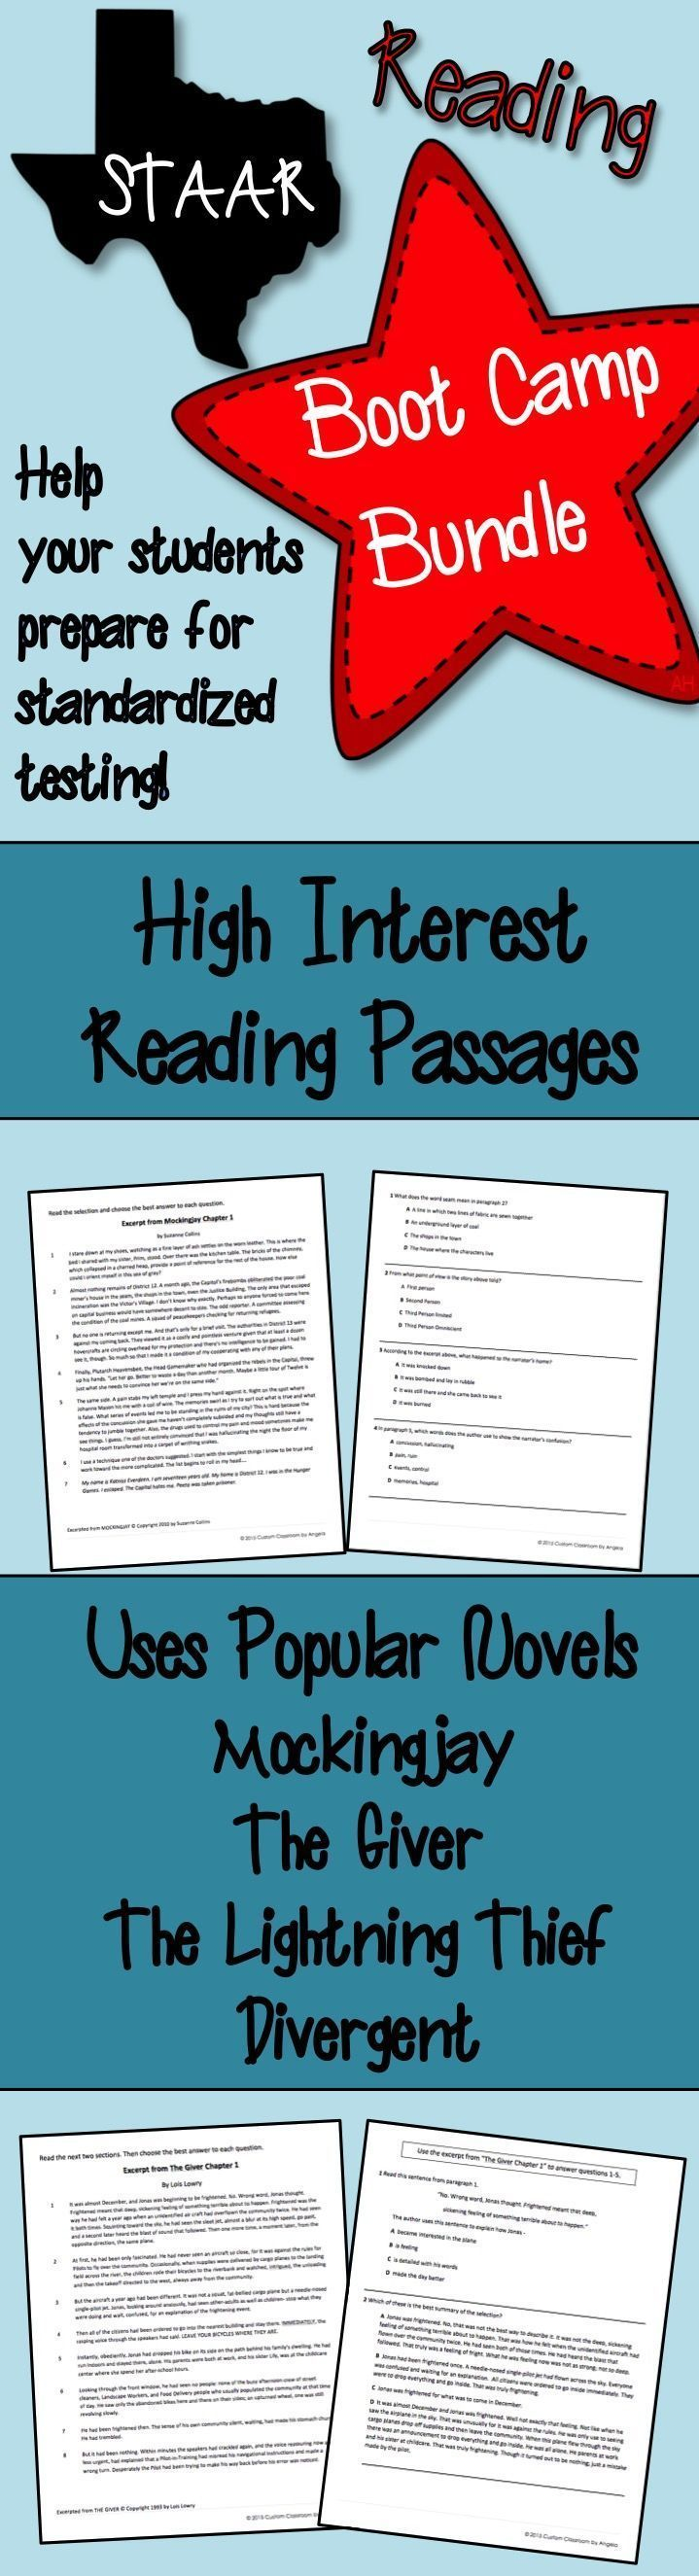 Best 25 free act practice test ideas on pinterest act practice best 25 free act practice test ideas on pinterest act practice test act test prep free and act test prep xflitez Image collections